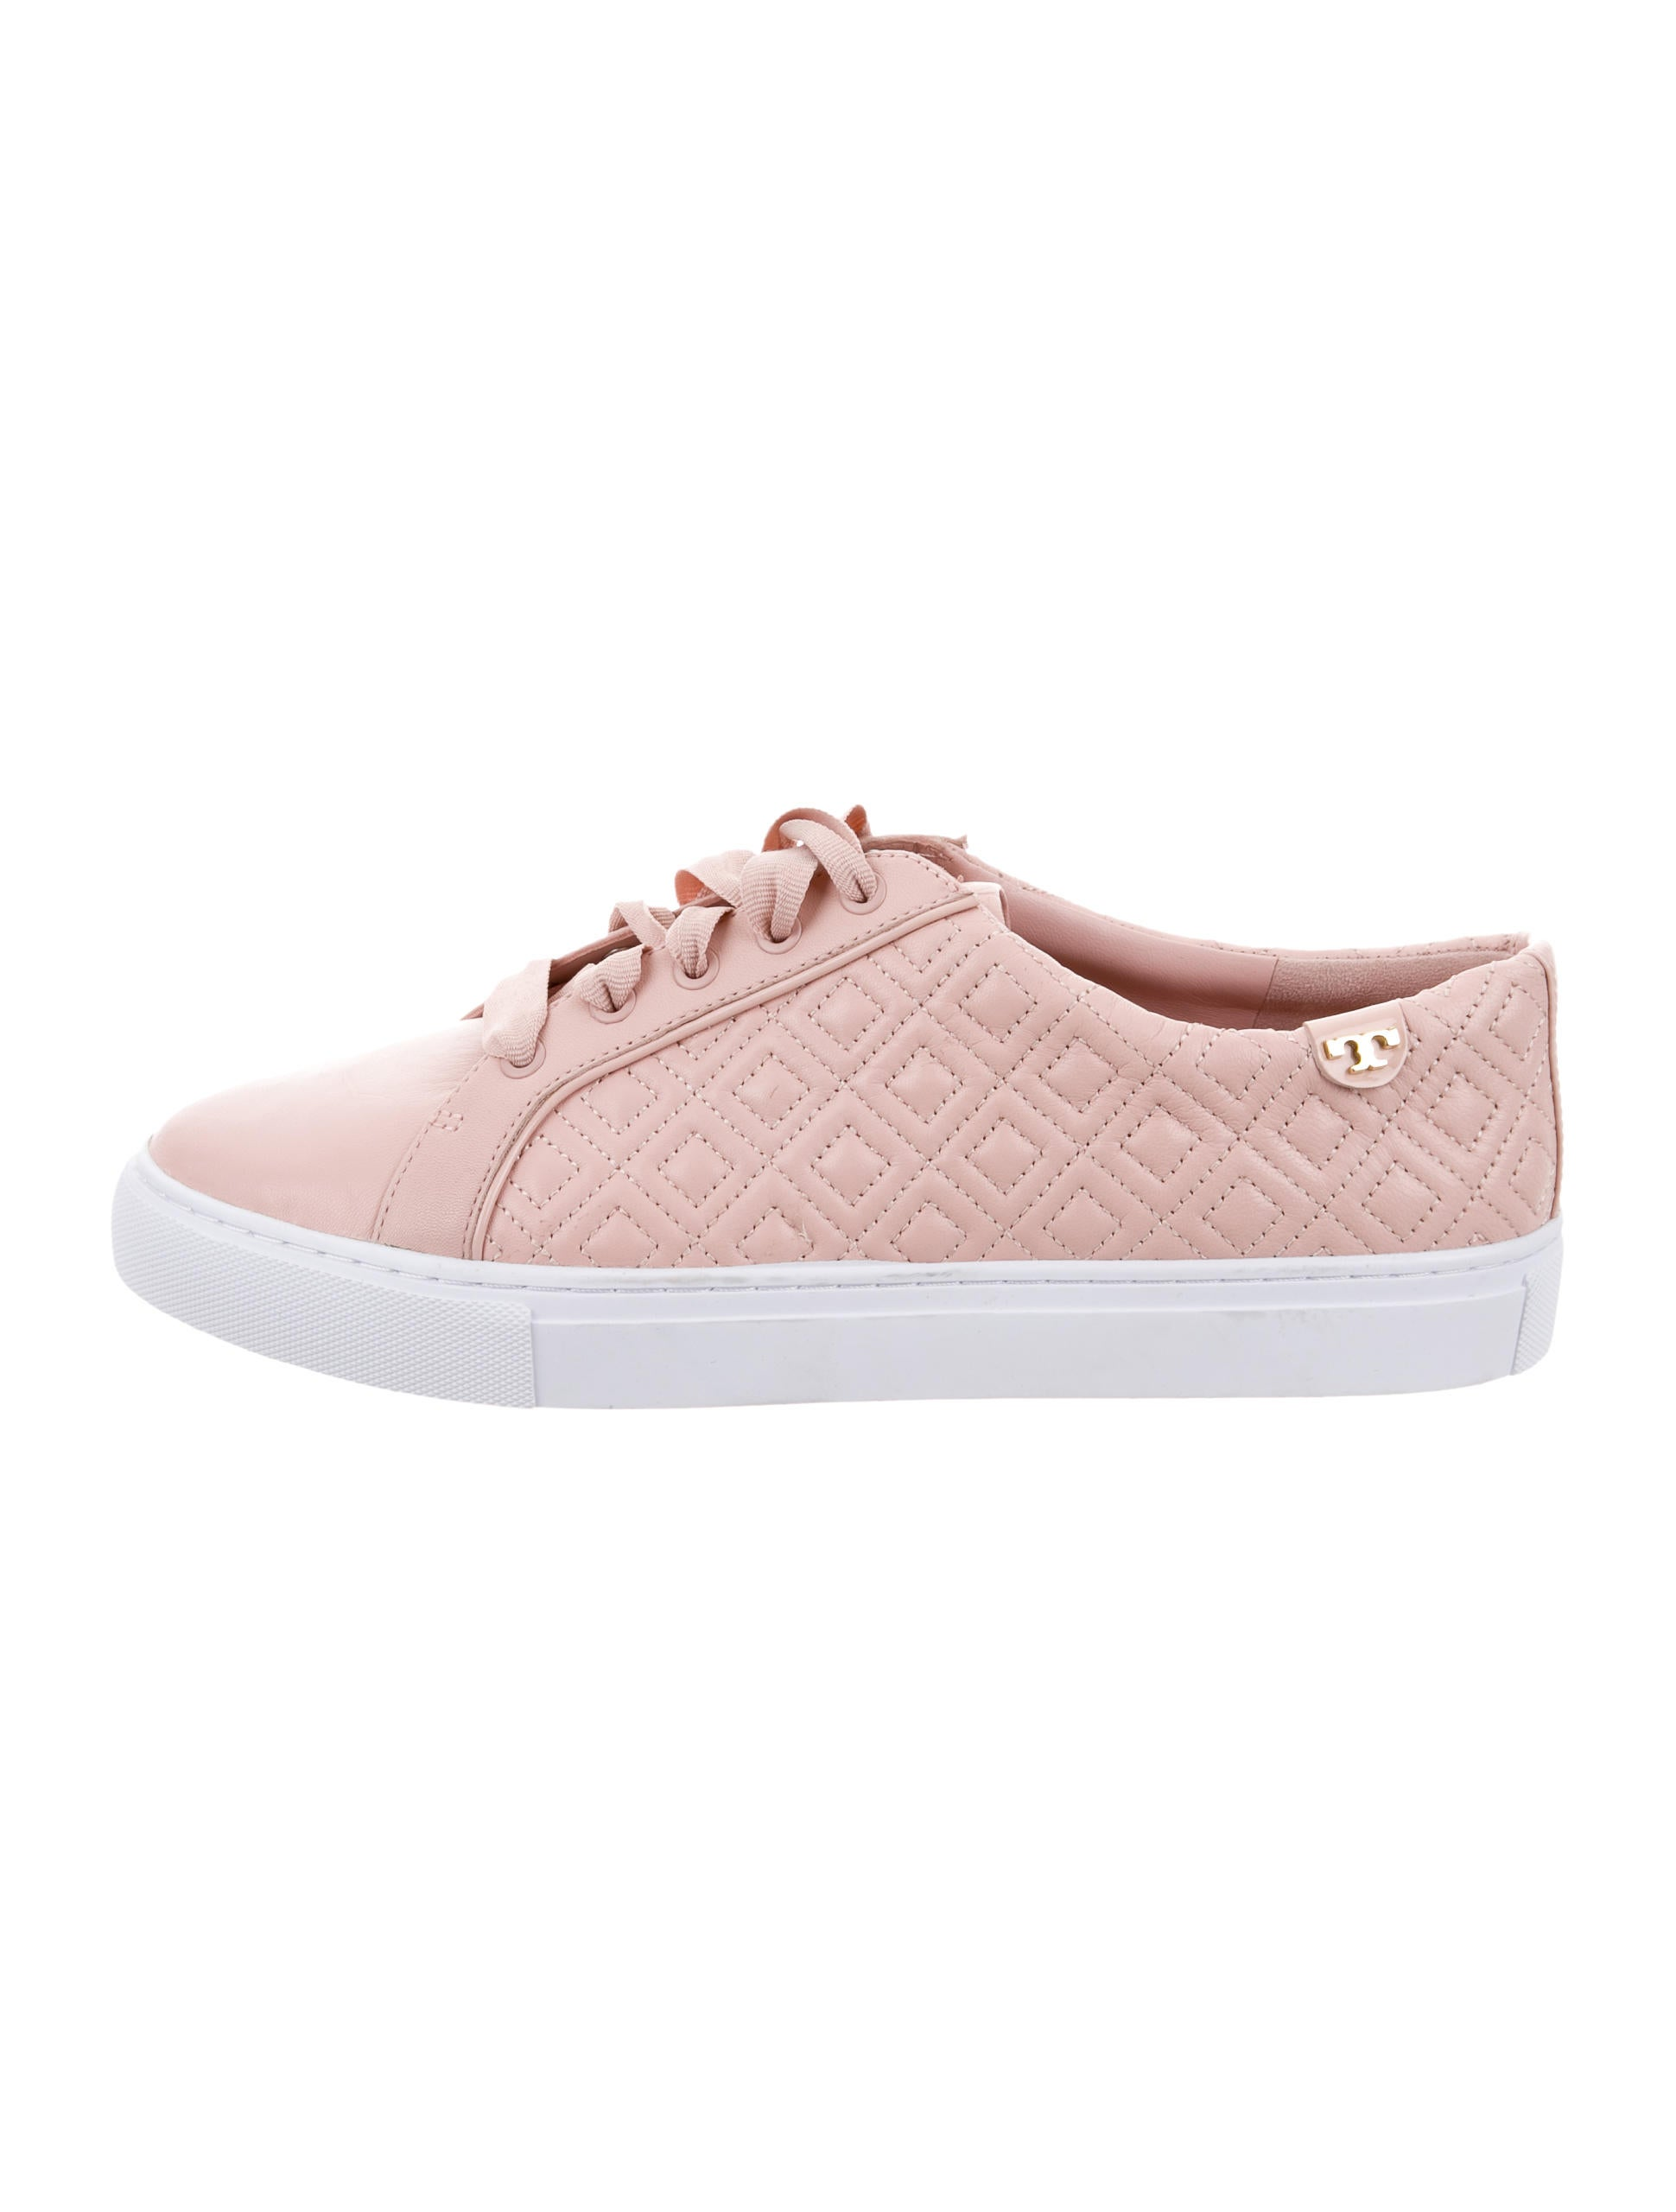 82ff36427471 Tory Burch Marion Quilted Sneakers - Shoes - WTO114212